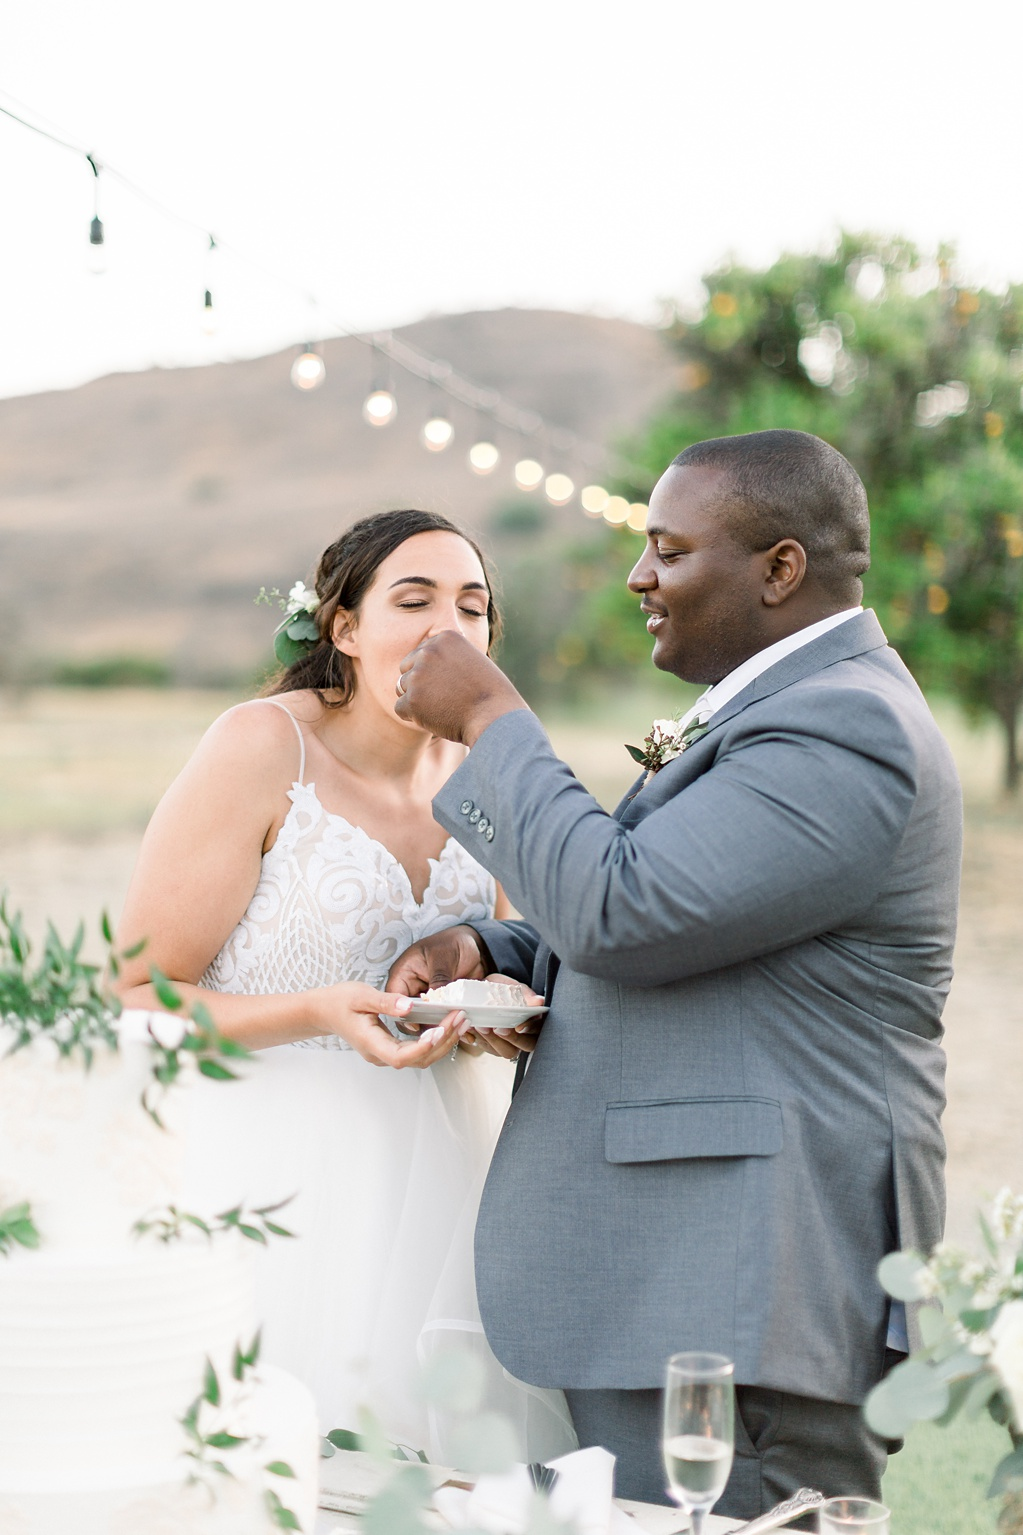 An Organic Floral Inspired Summer Wedding in the open fields of Hamilton Oaks, San Juan Capistrano by Wedding Photographer Madison Ellis (12)